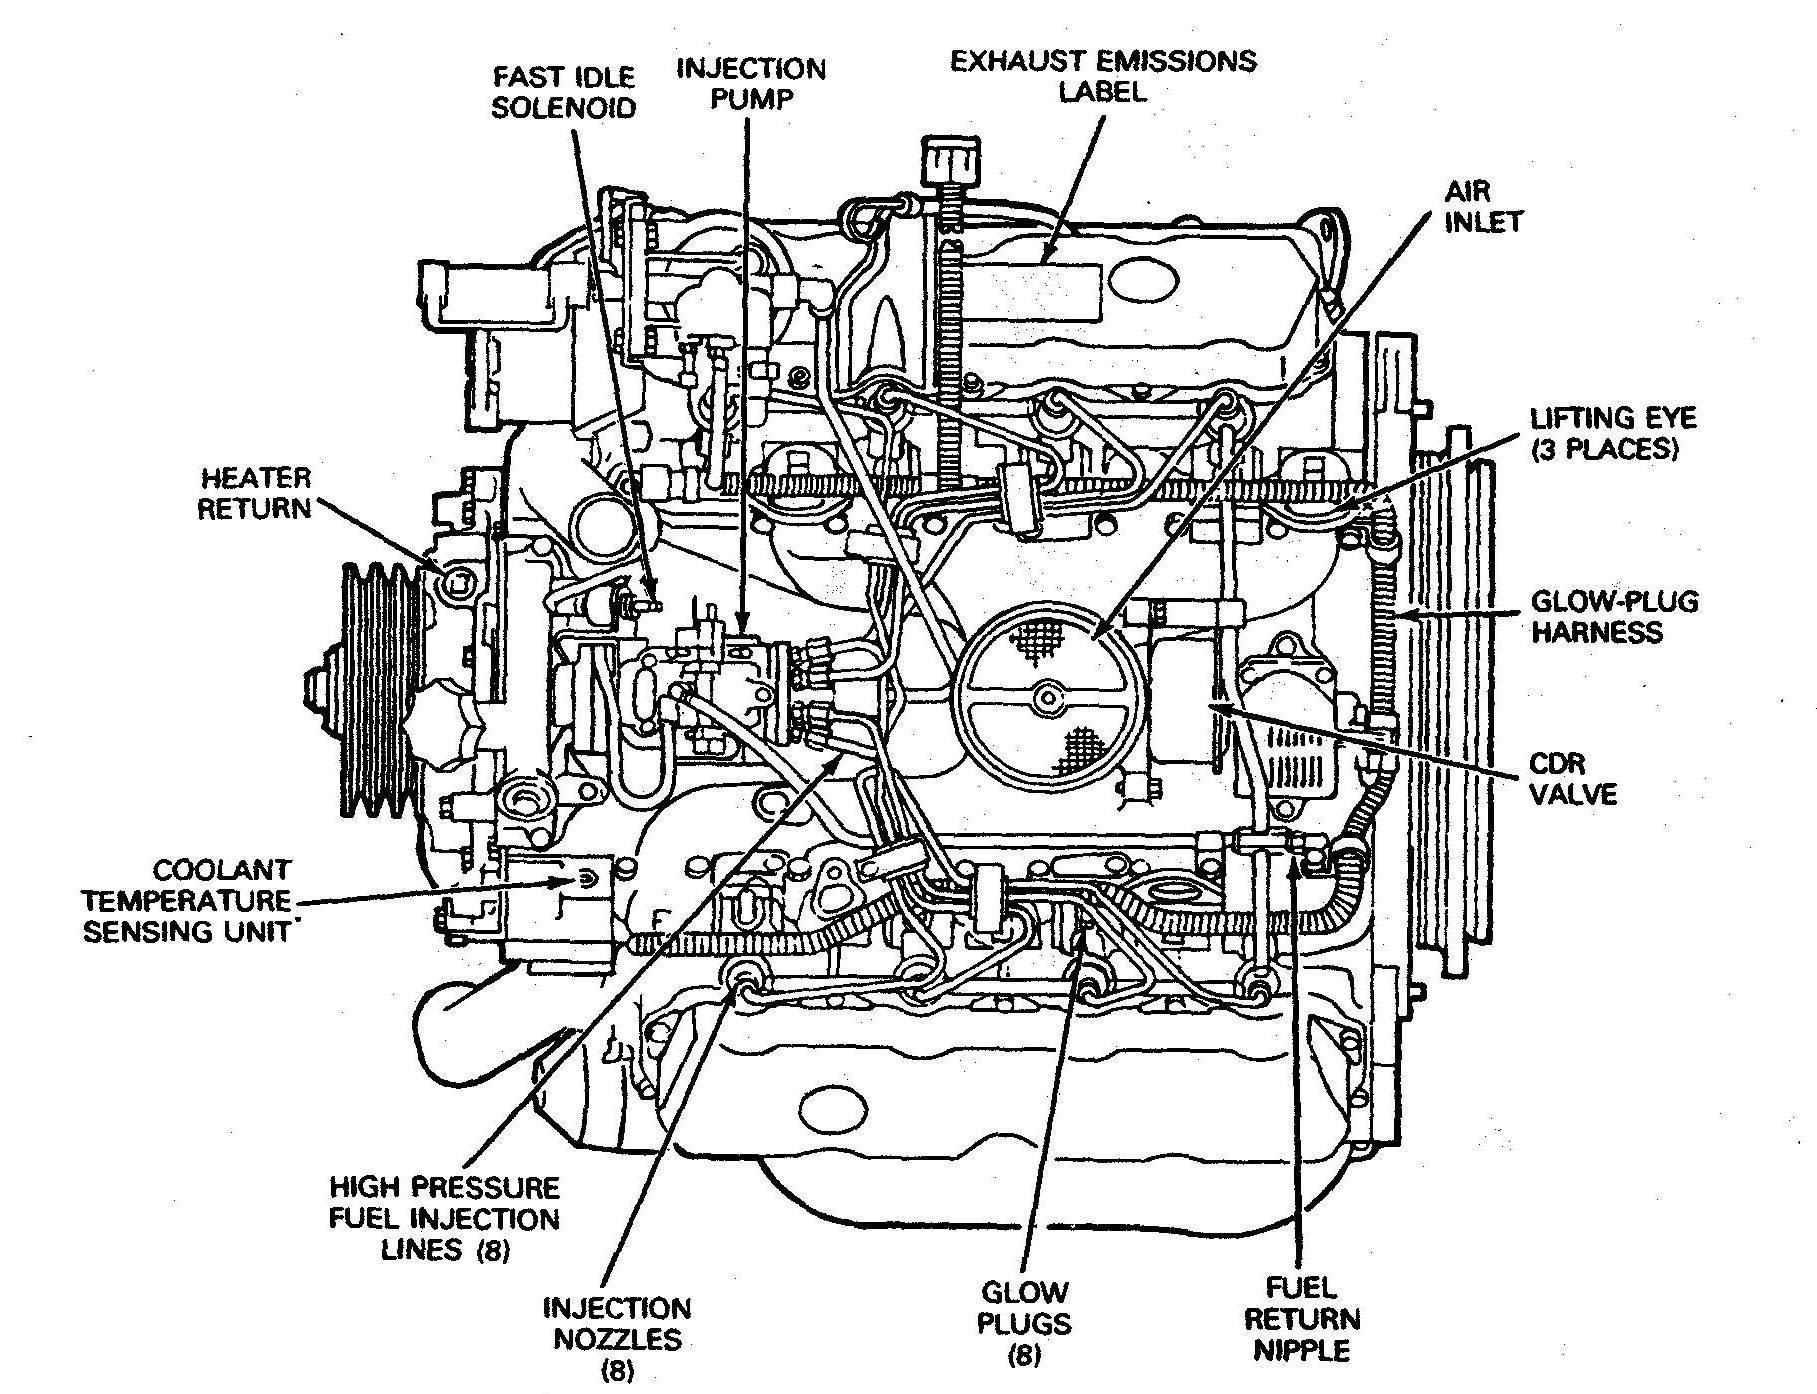 Engine Internals Diagram Automotive Engine Diagram Wiring Diagrams Of Engine Internals Diagram